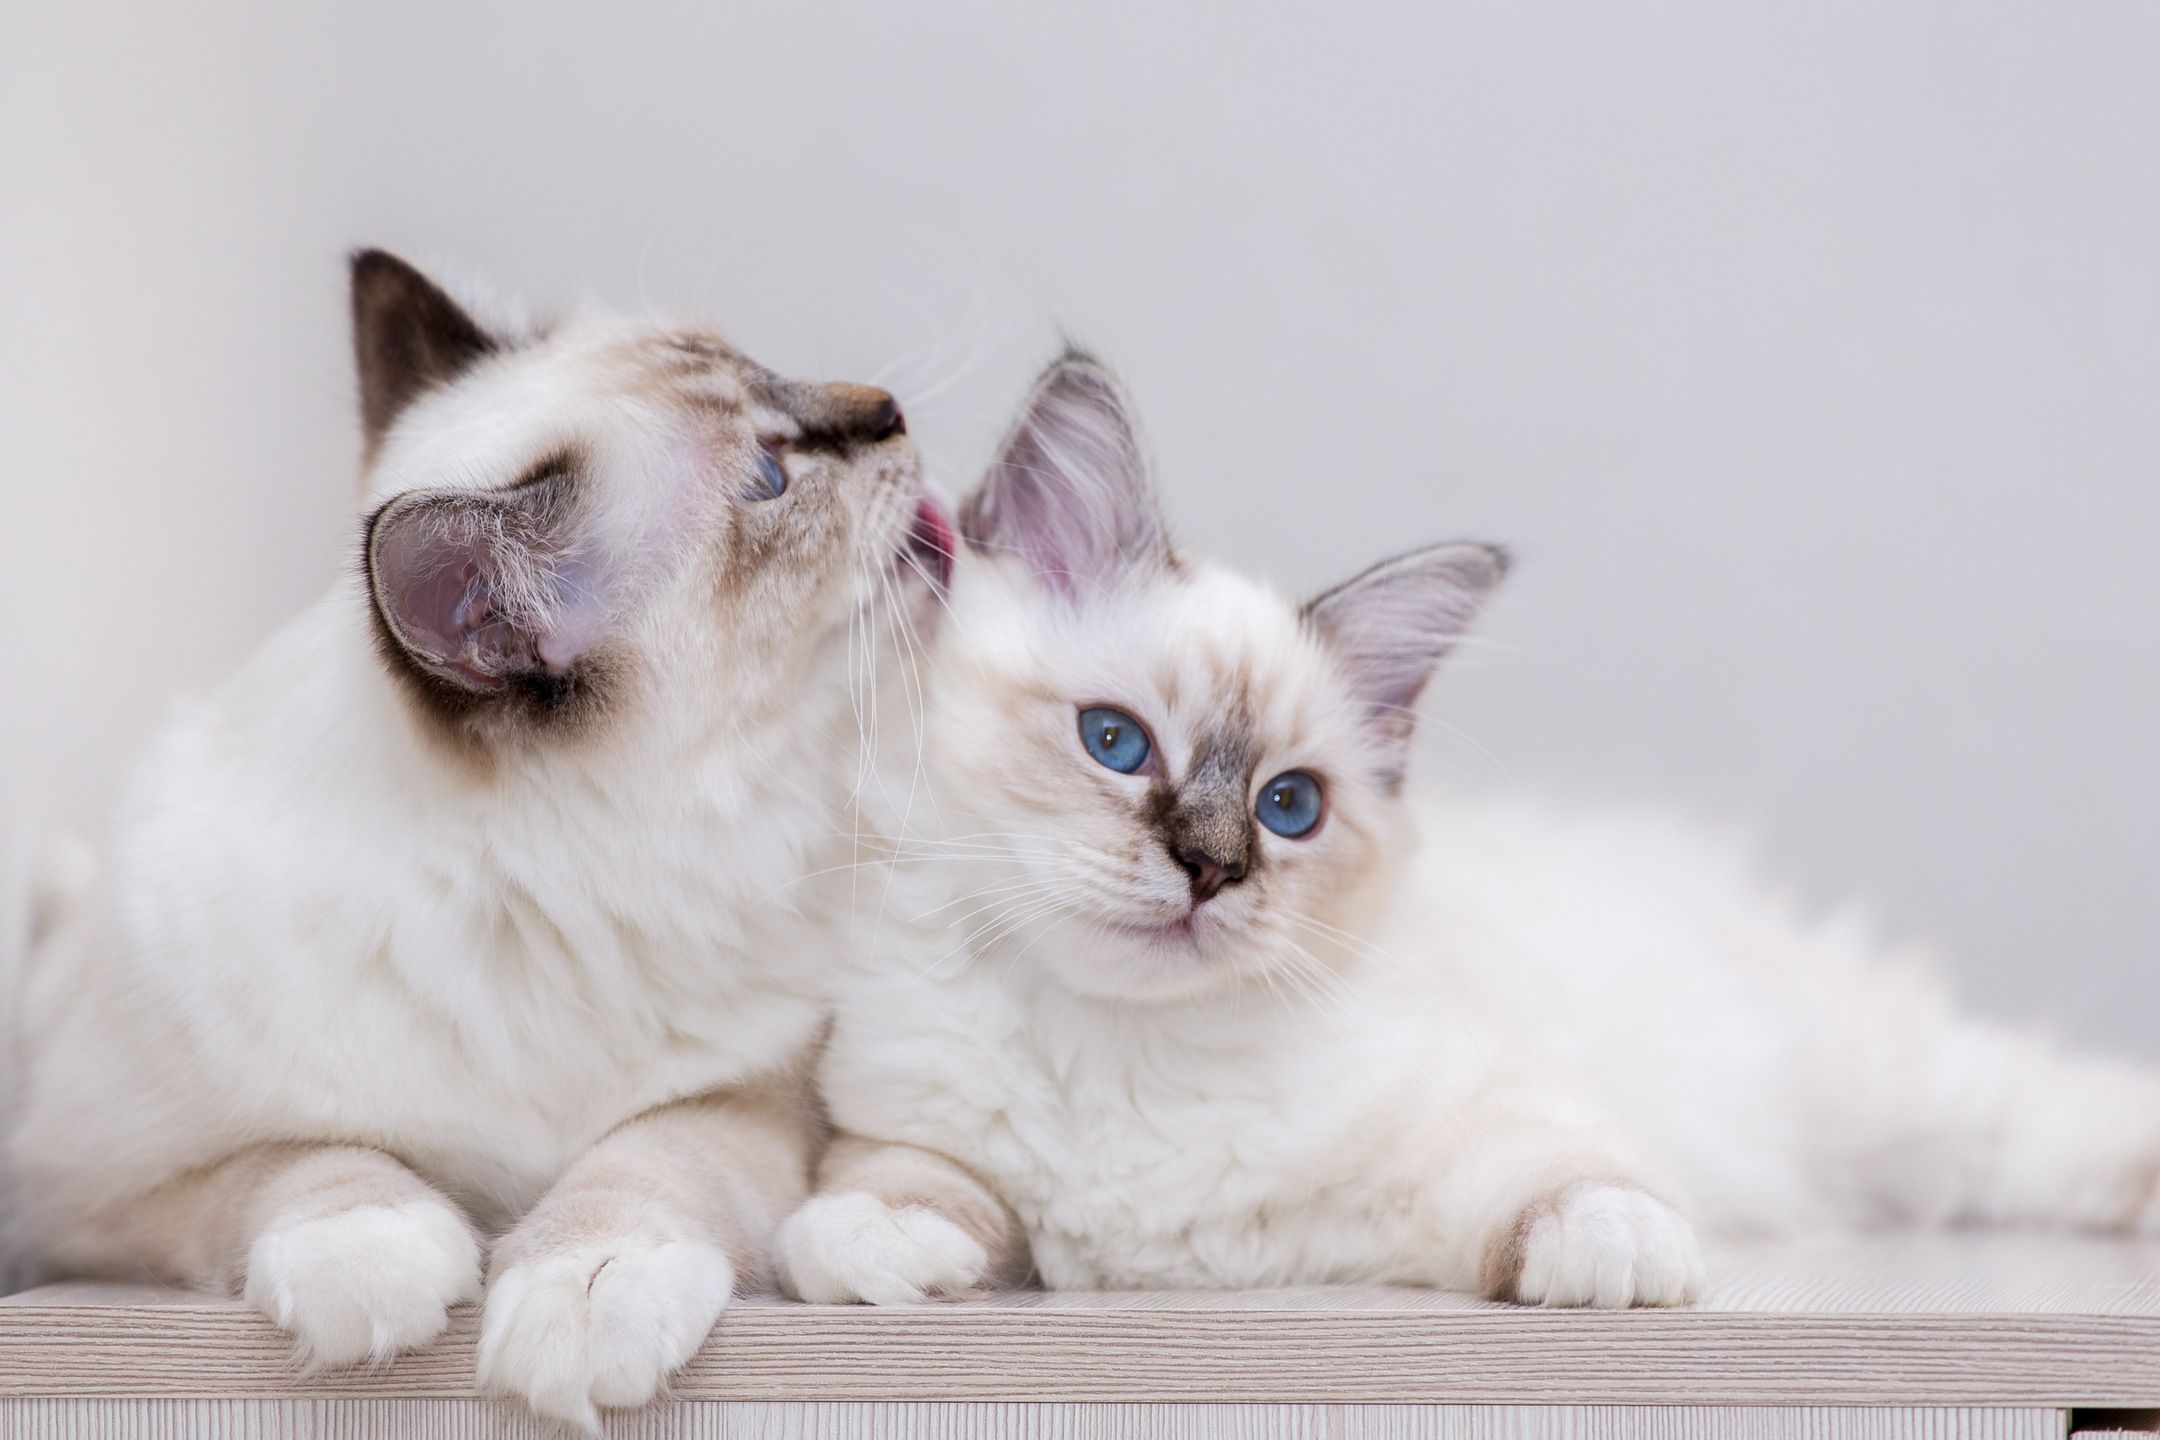 Affectionate Sacred Birman Cats Birmans Are Gentle And Playful Cats That Are Known For Their Striking Blue Eyes And Originated In Bur 可愛すぎる動物 ラグドール 猫 動物 かわいい